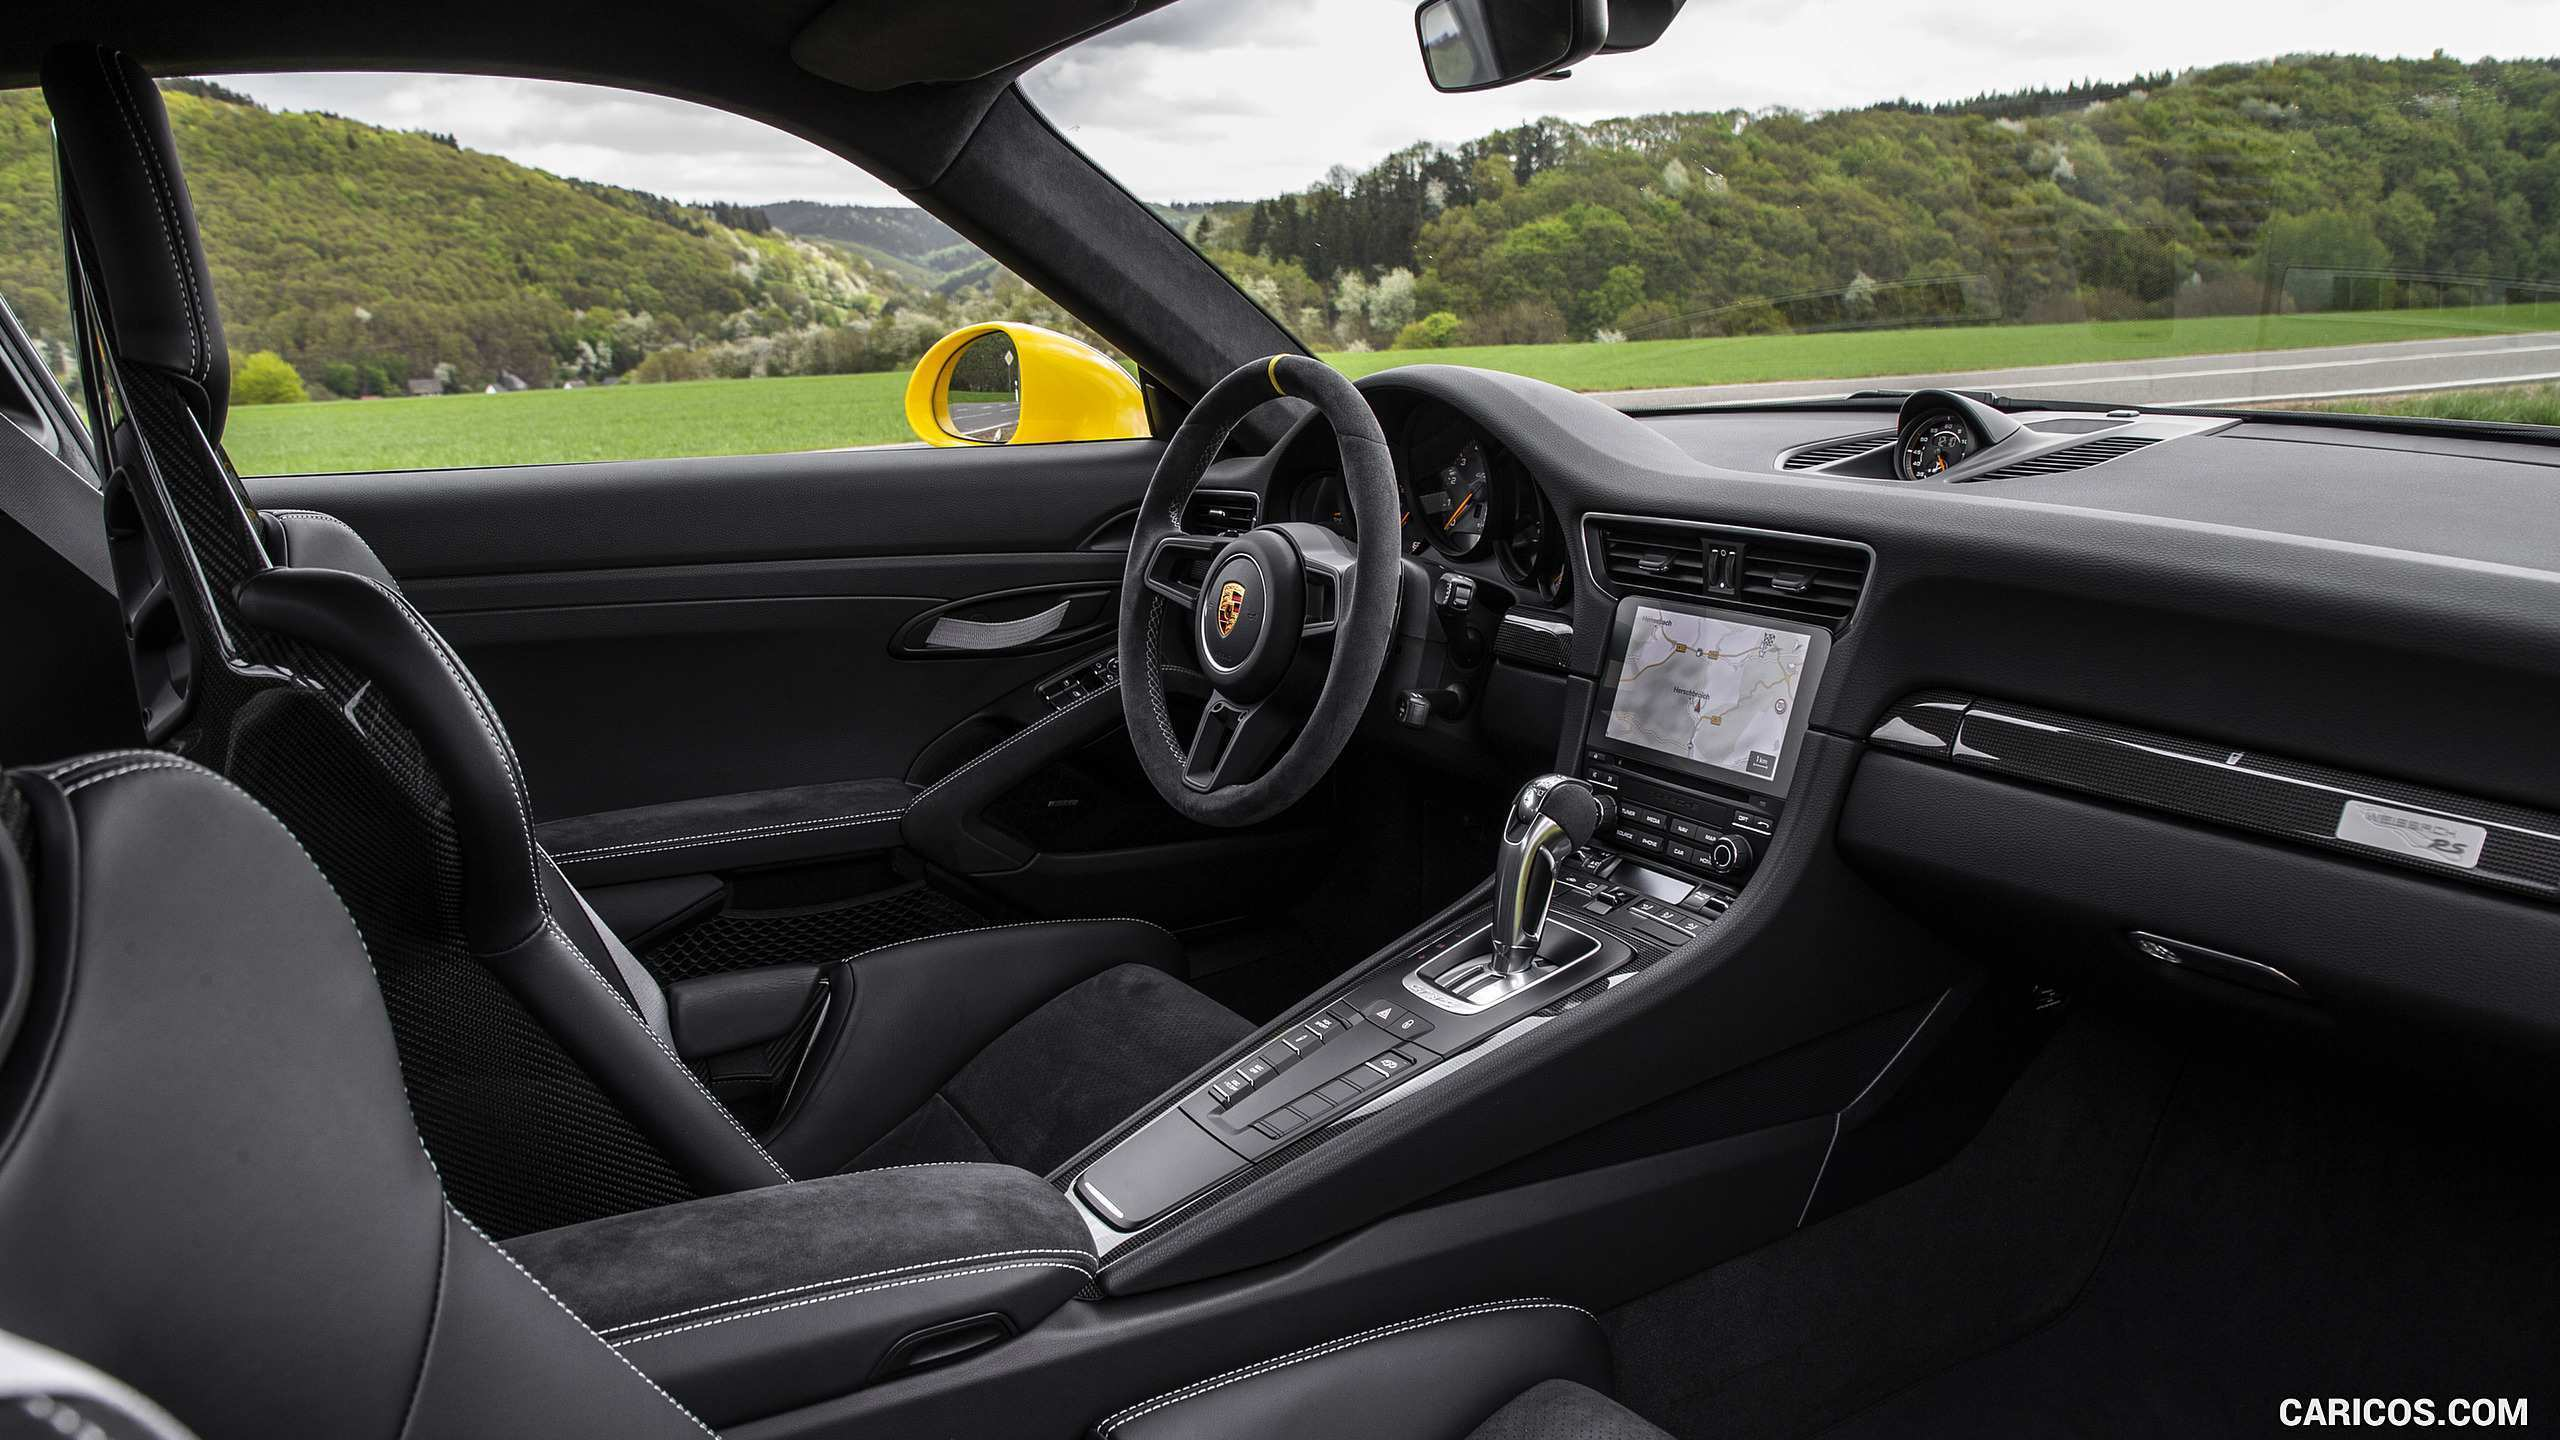 12 Concept of 2019 Porsche 911 Interior Exterior for 2019 Porsche 911 Interior